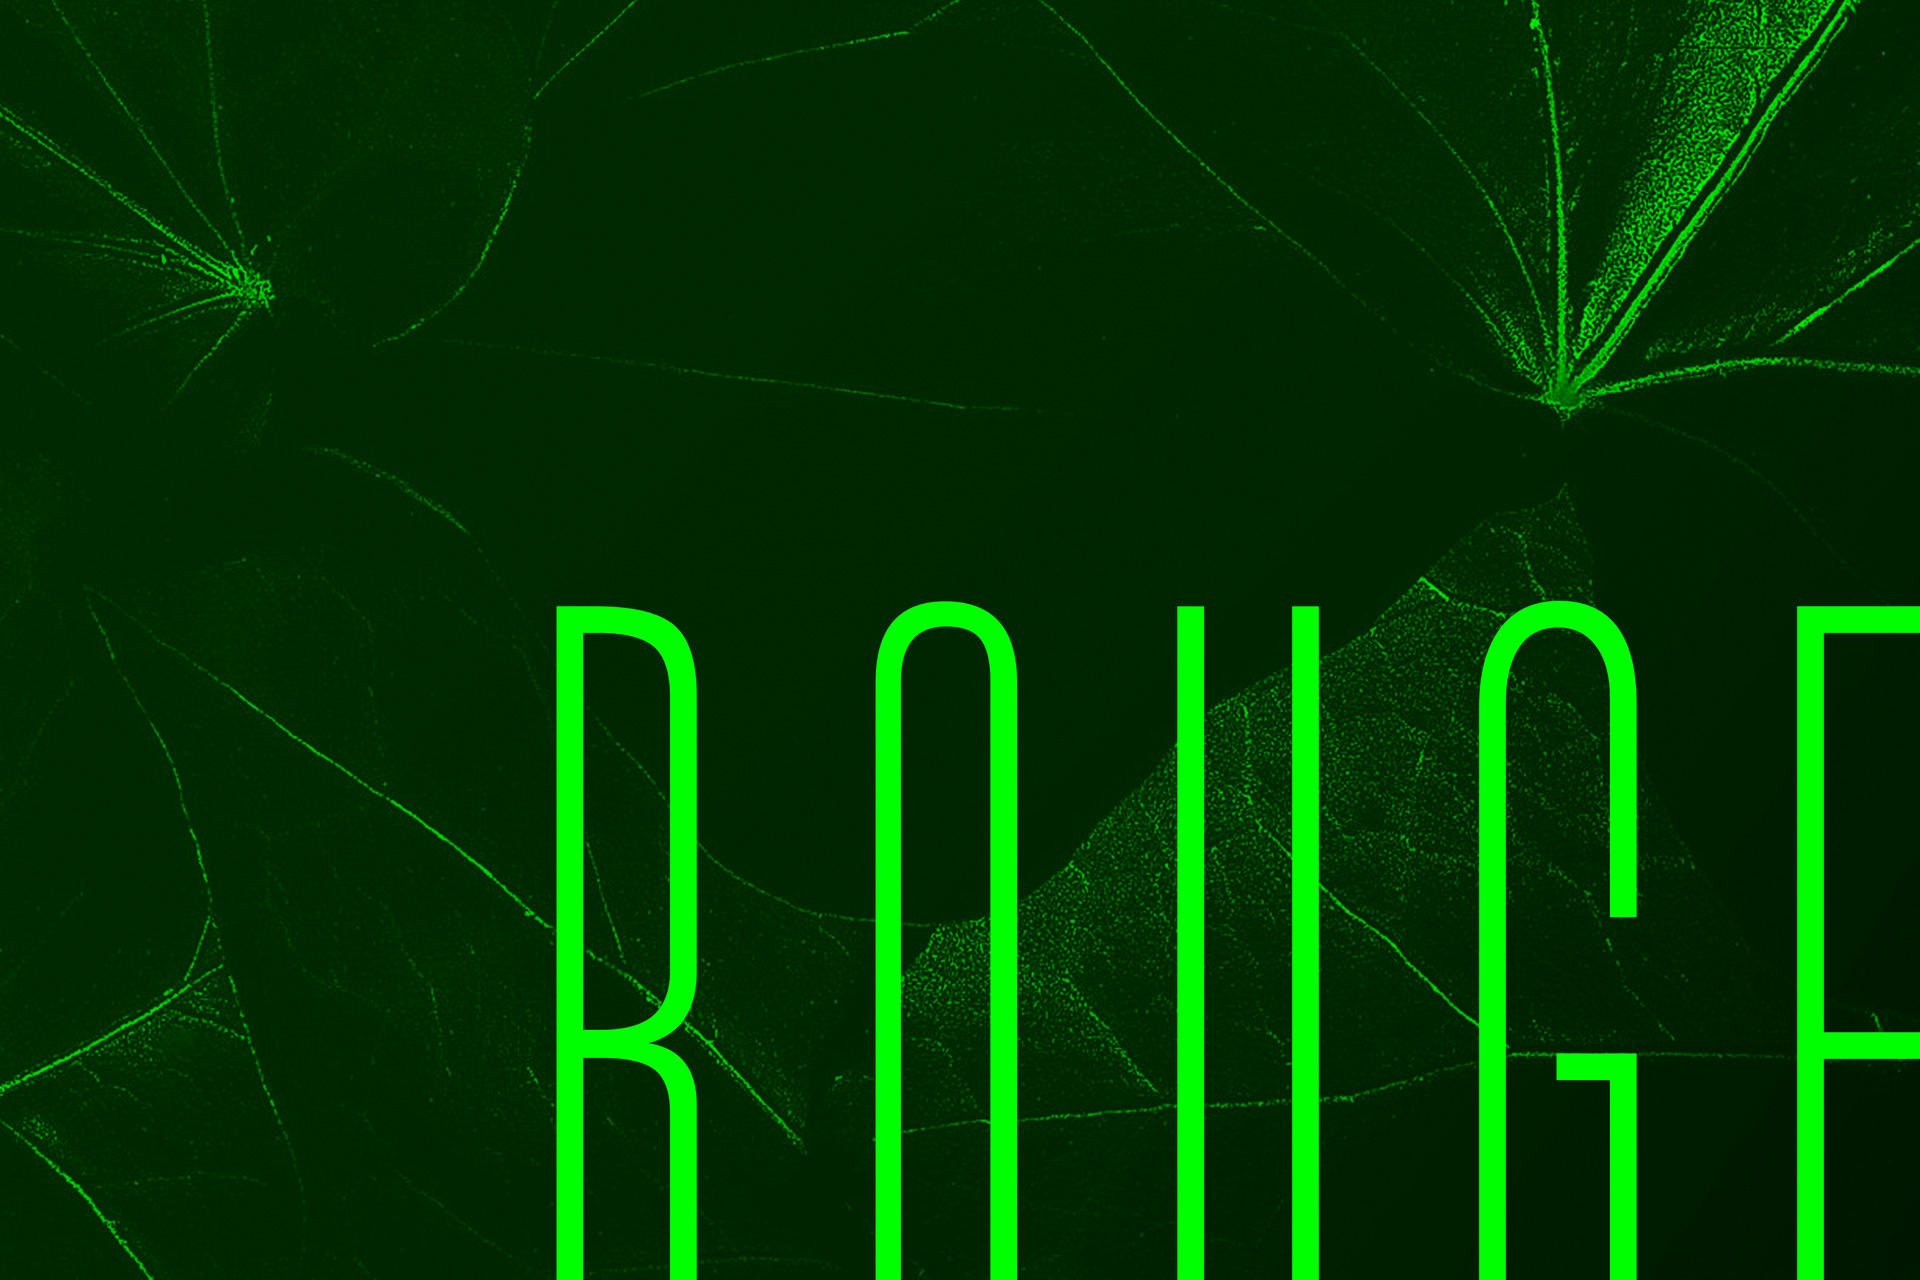 _EDITIONS-APPART_affiche-a2-vert-fluo_07_rouge_2